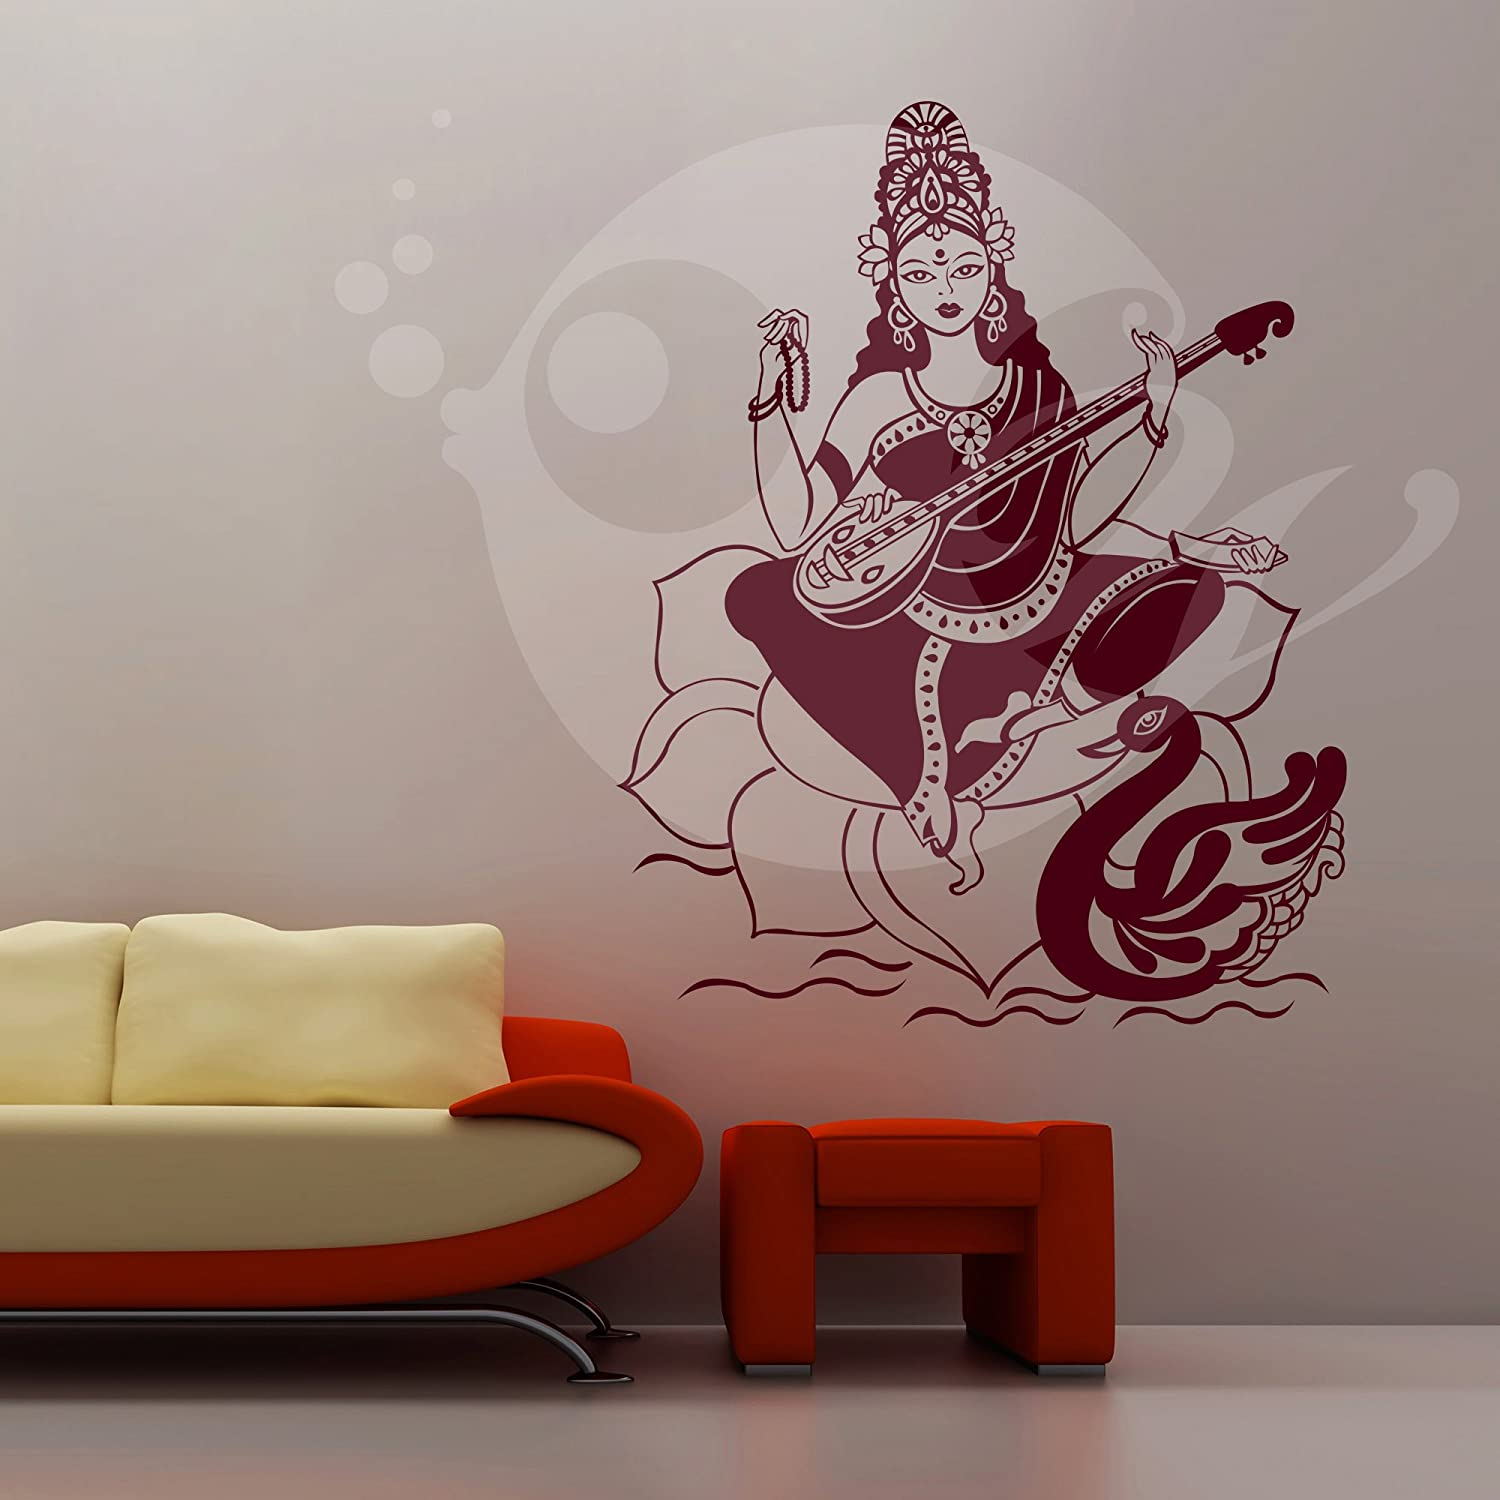 Buy maa saraswati wall sticker decal online at low prices in india buy maa saraswati wall sticker decal online at low prices in india amazon amipublicfo Gallery